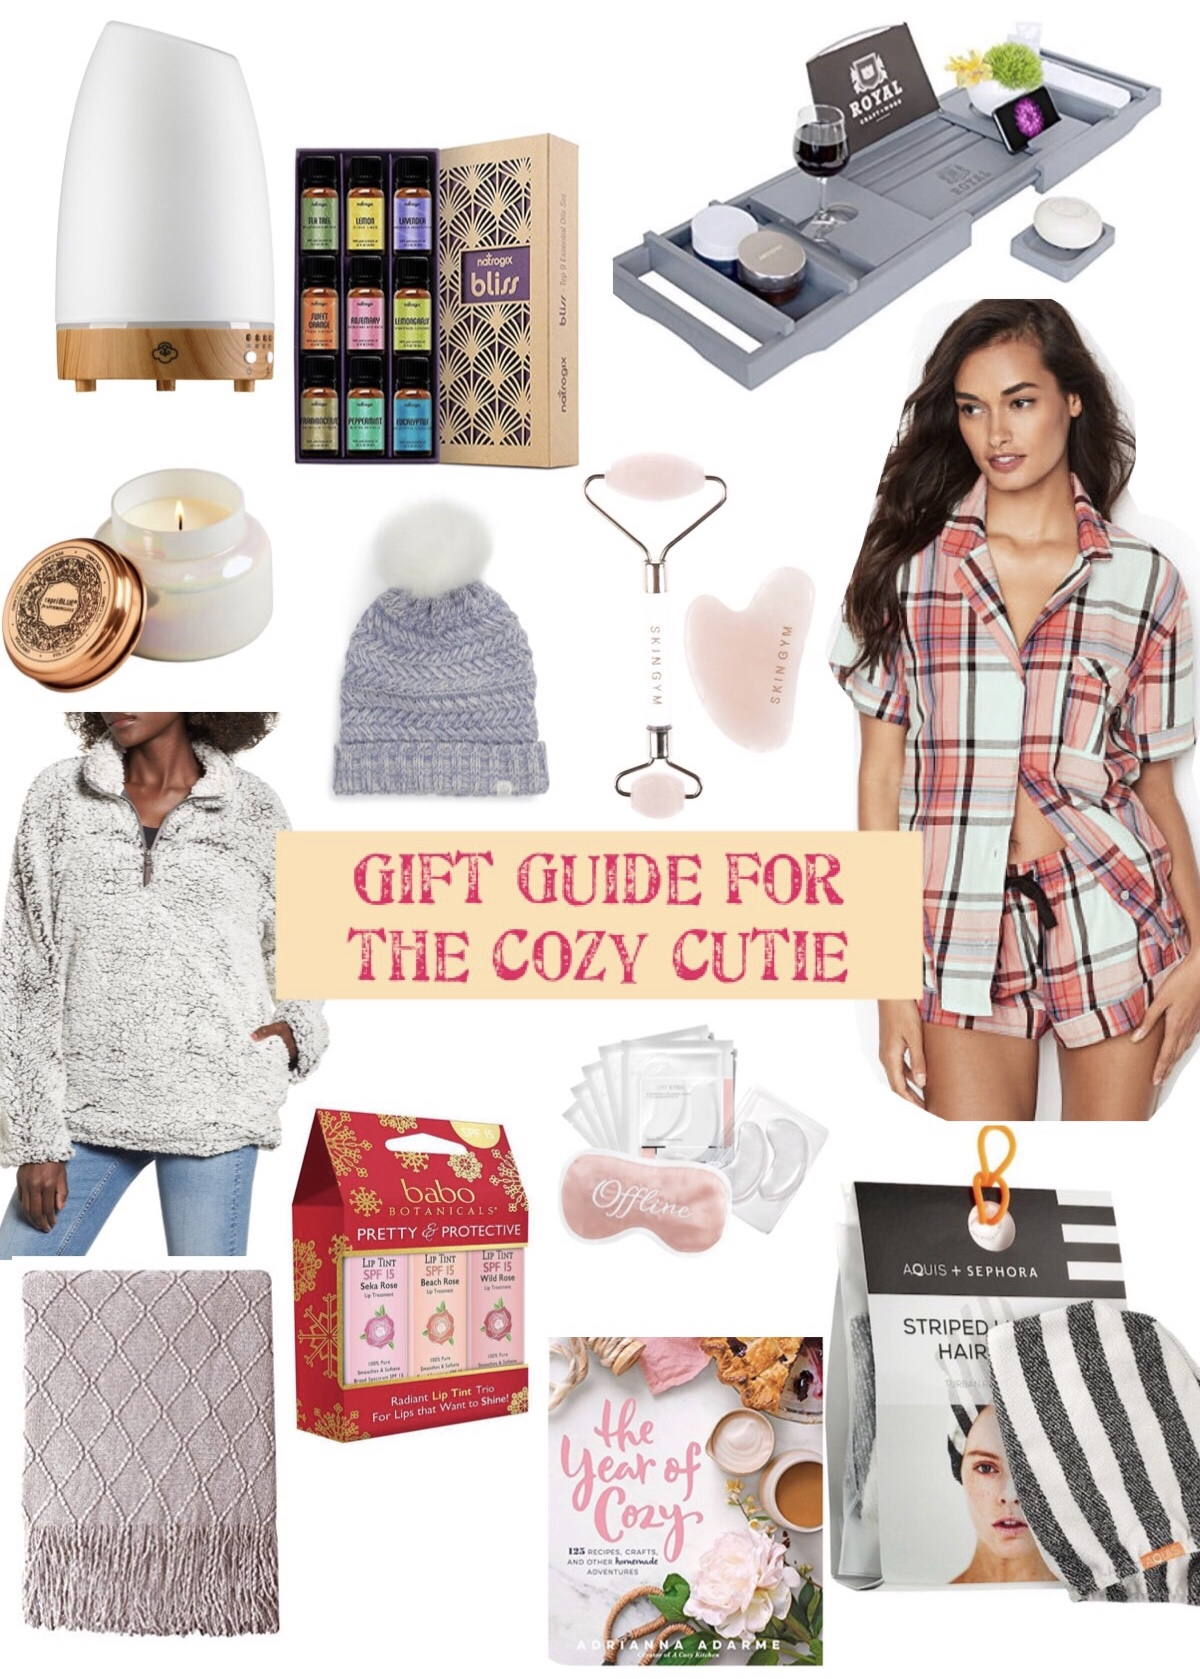 Gift Guide – For the Cozy Cutie